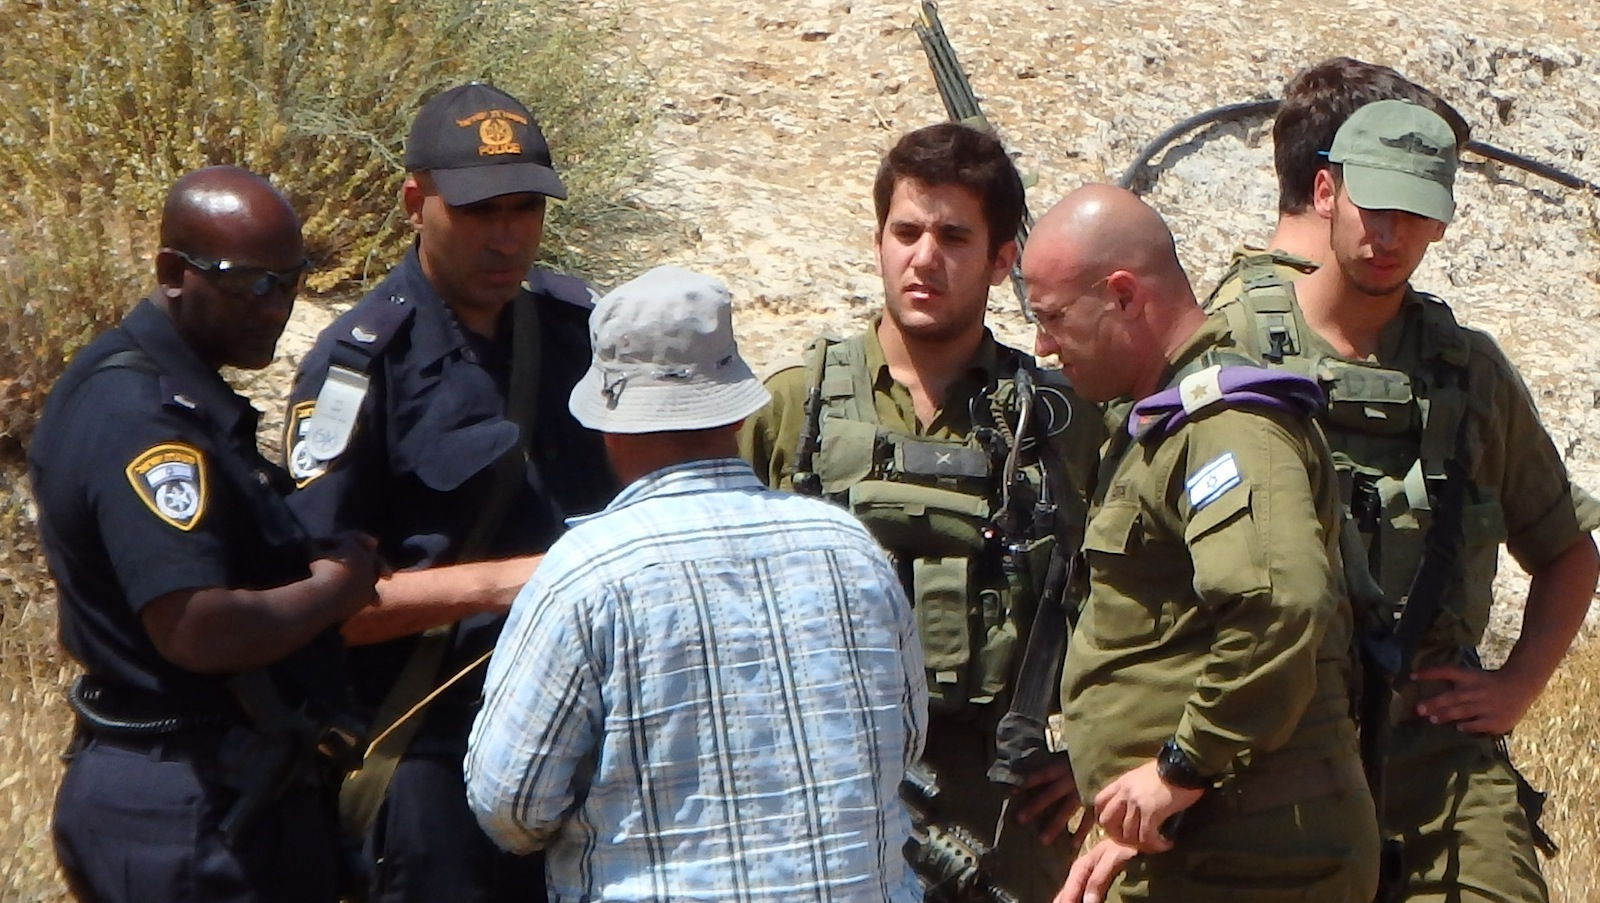 The Palestinian owner of the uprooted trees speaking with Israeli Police, DCO and Army officers